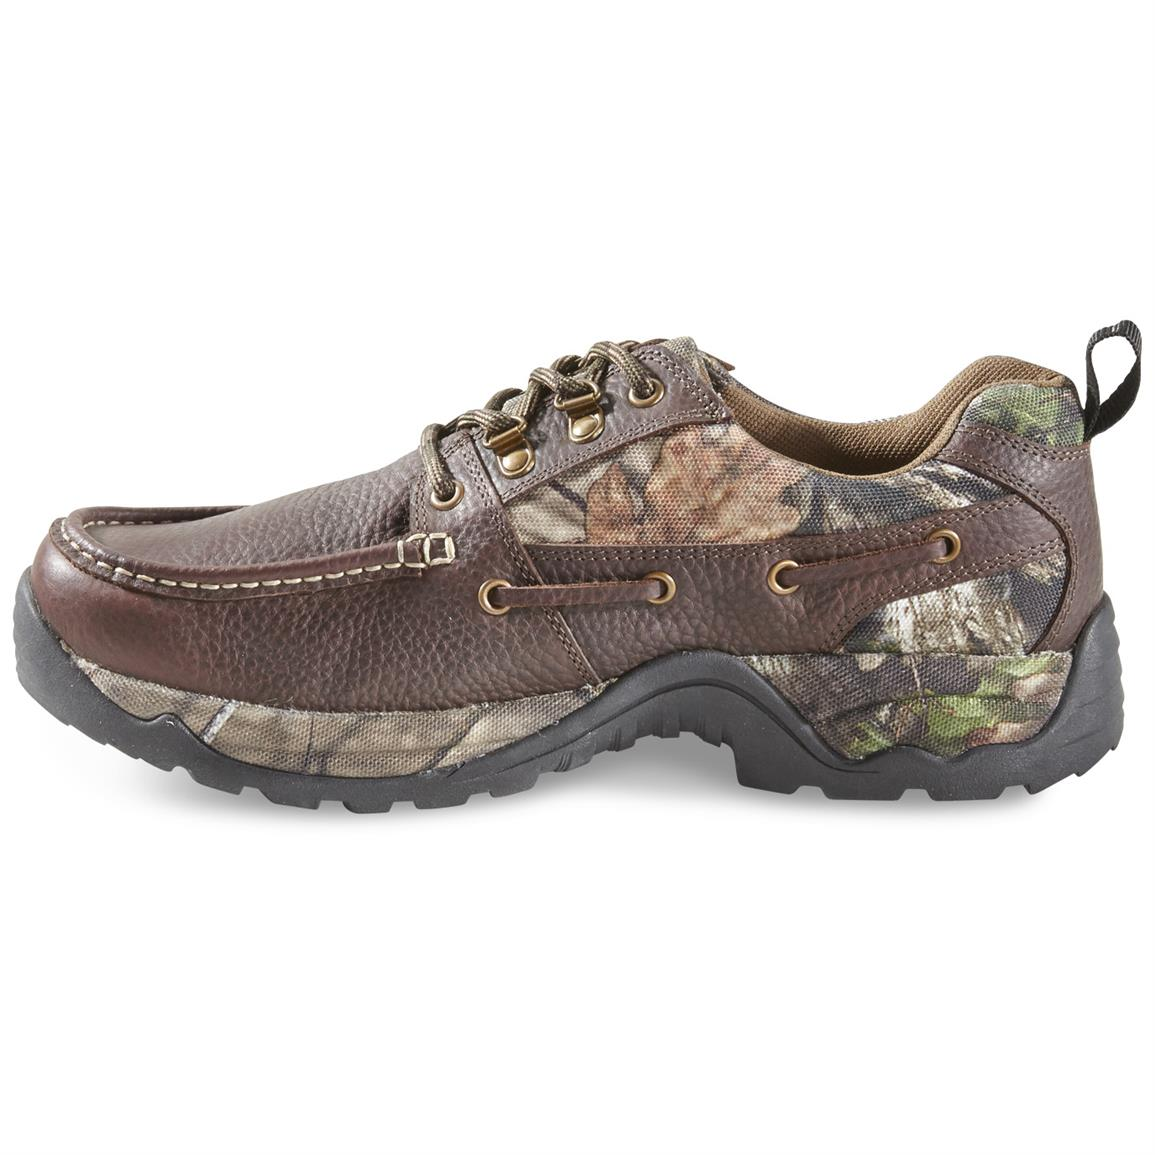 Uppers are a combination of leather and Mossy Oak Break-Up COUNTRY nylon for durability